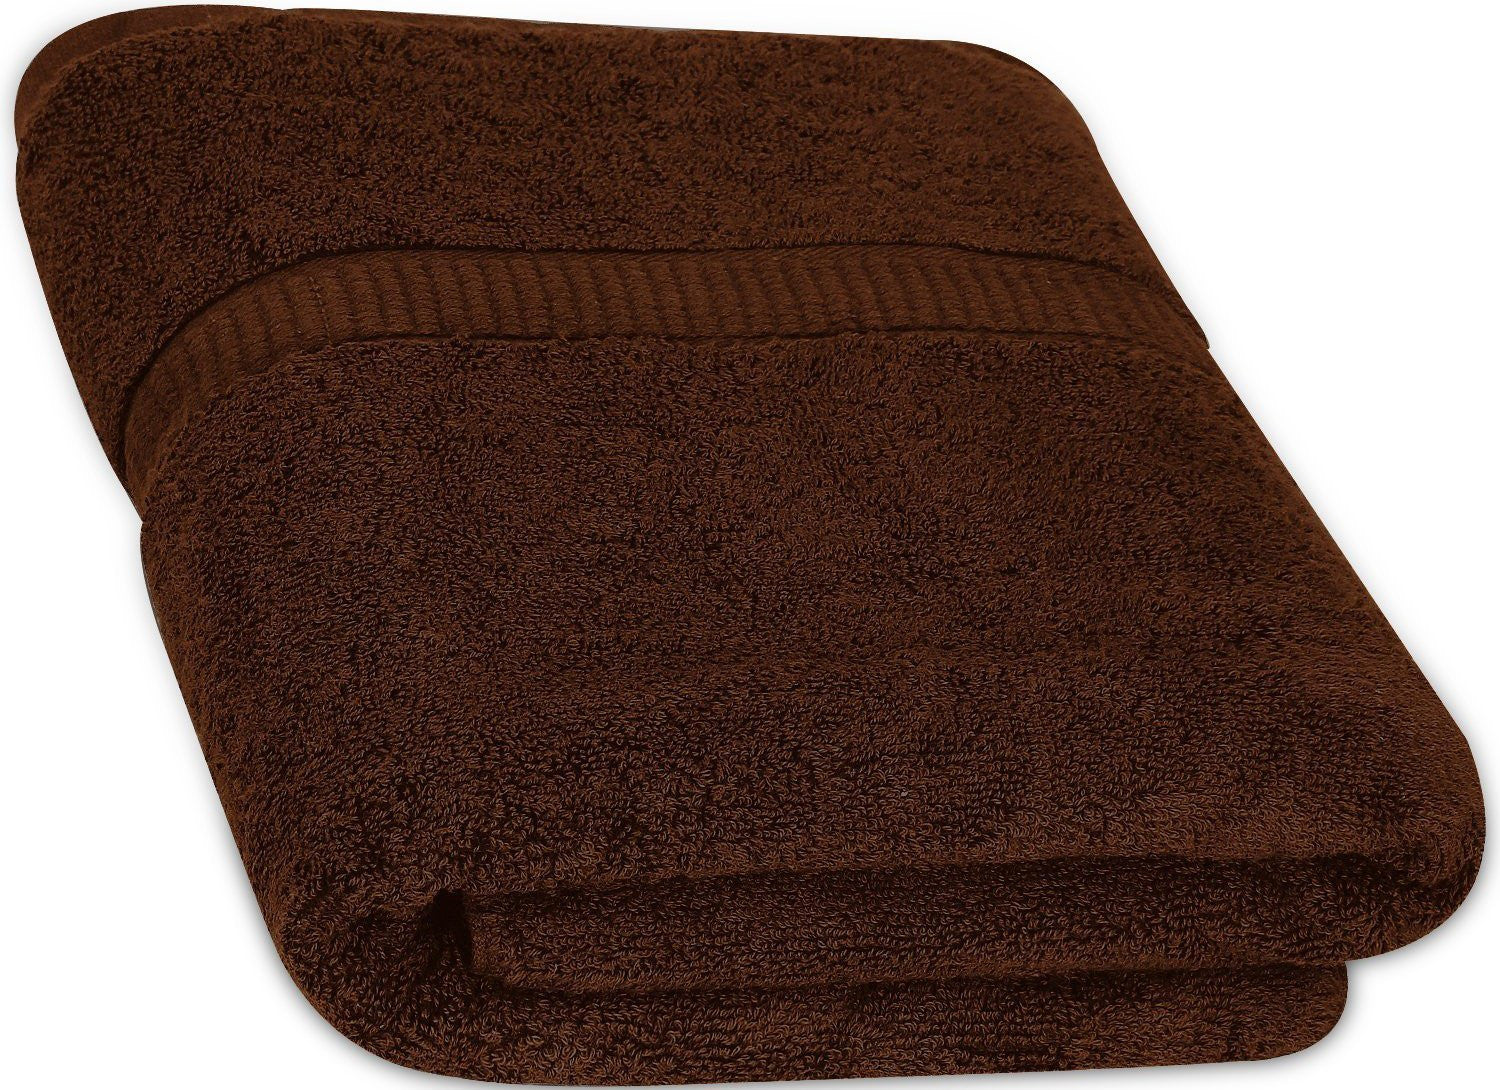 Cotton Luxury Bath Towel - Dark Brown